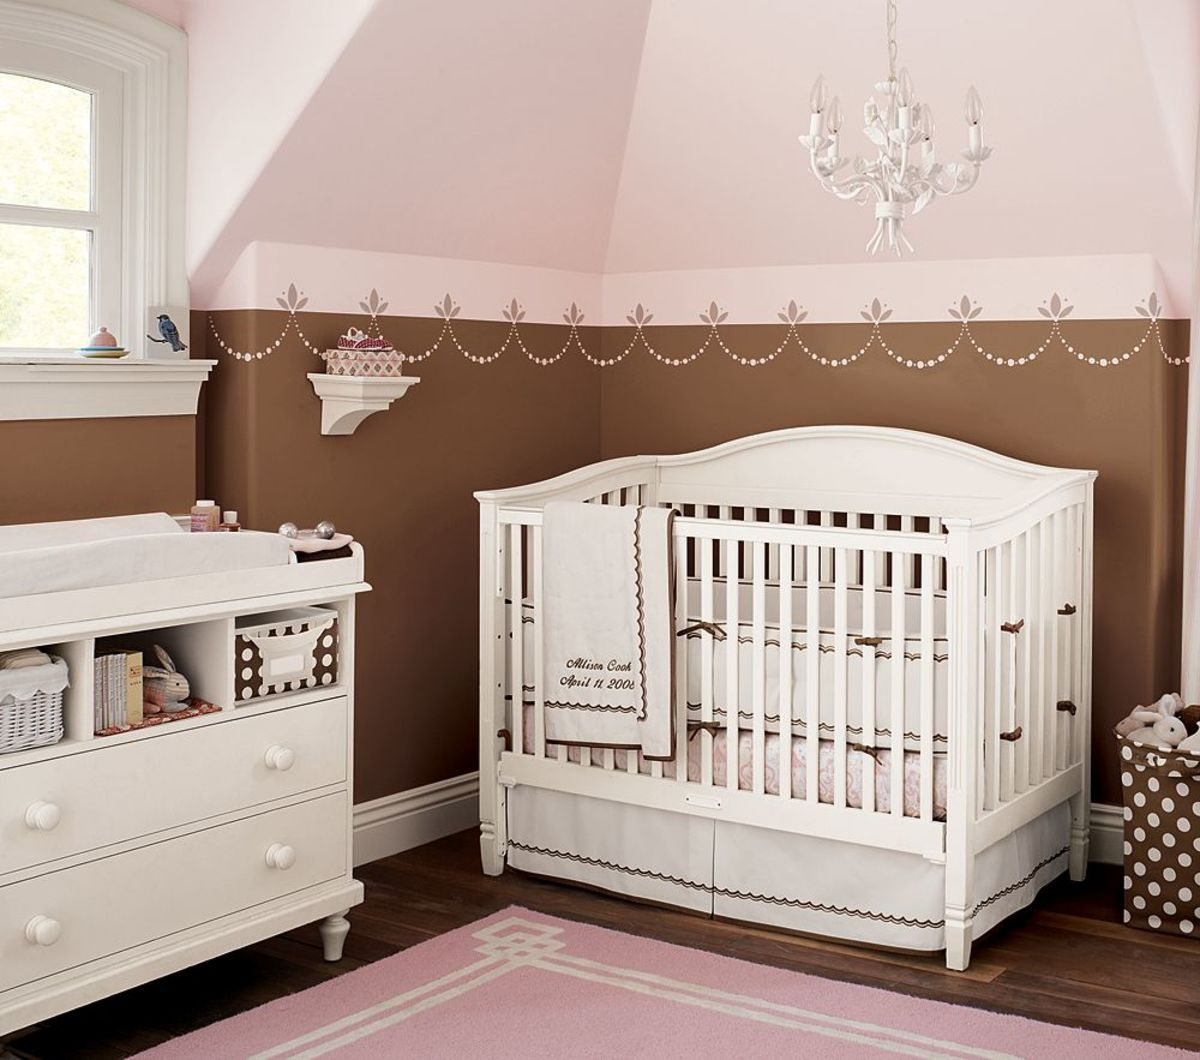 Pink And Brown Room Theme (Baby Room, Living Room, Bedroom) | Hubpages